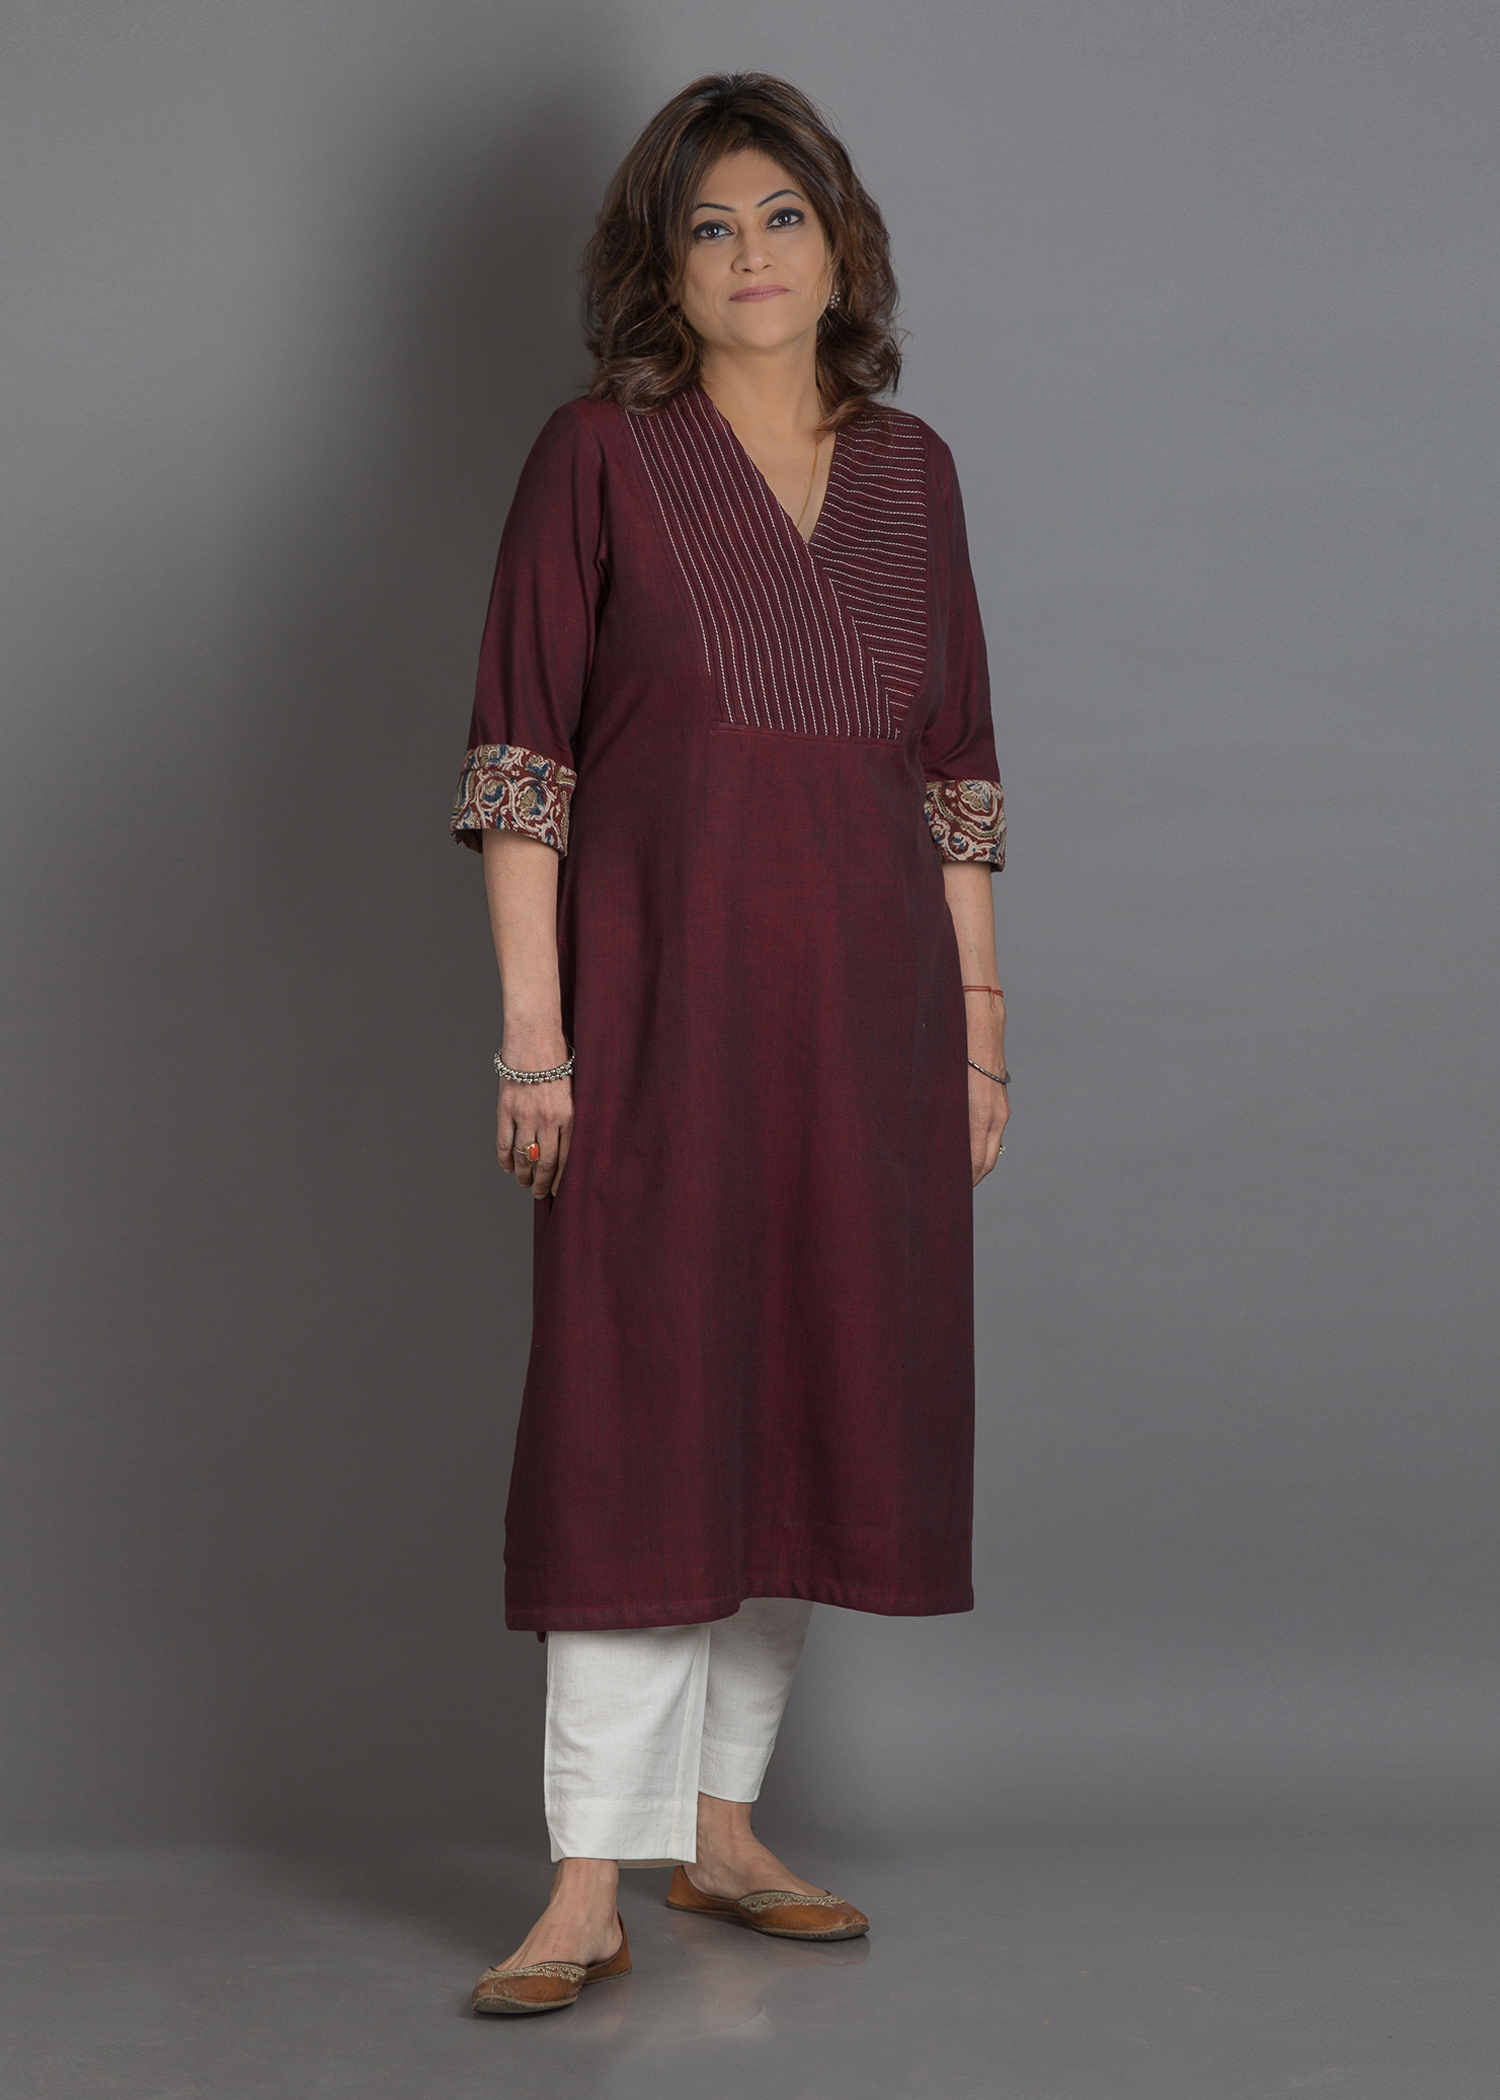 Burgundy Pintuck & Tagai Handwoven Cotton Kurta with Kalamkari Cuffs